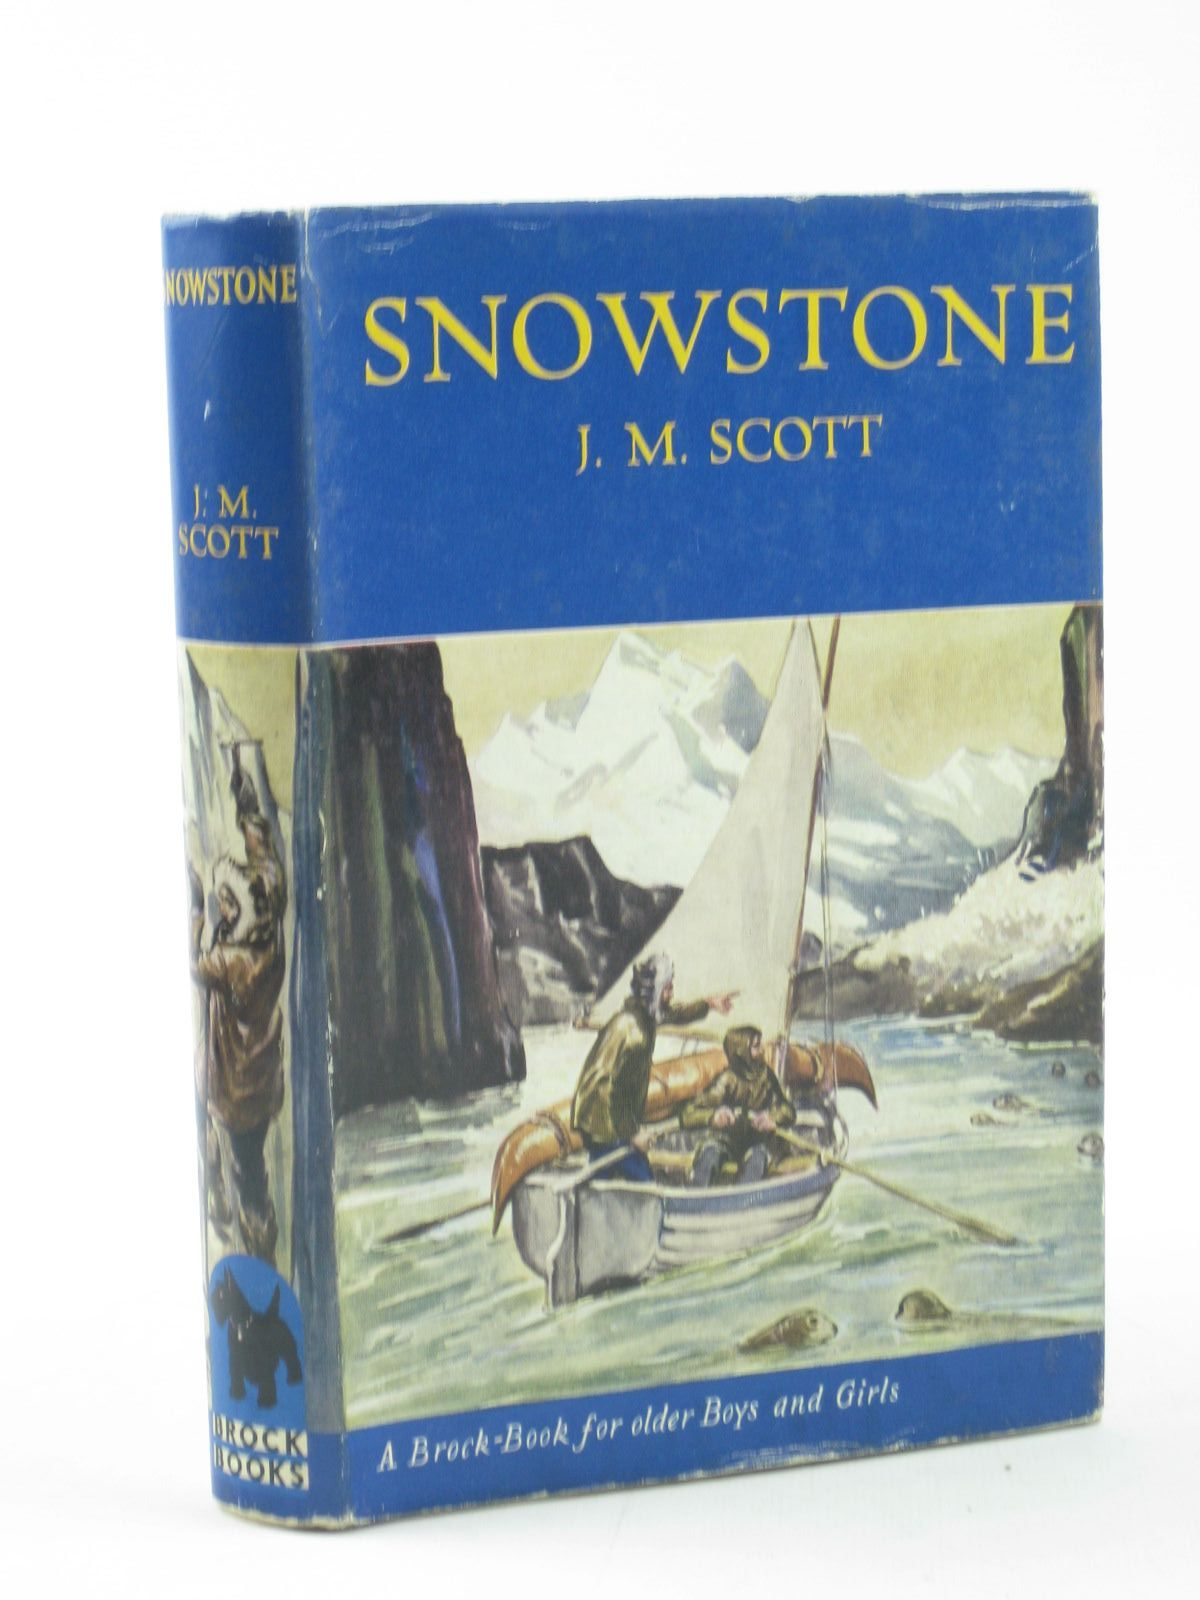 Photo of SNOWSTONE written by Scott, J.M. illustrated by Caney, published by The Brockhampton Press Ltd. (STOCK CODE: 1502098)  for sale by Stella & Rose's Books